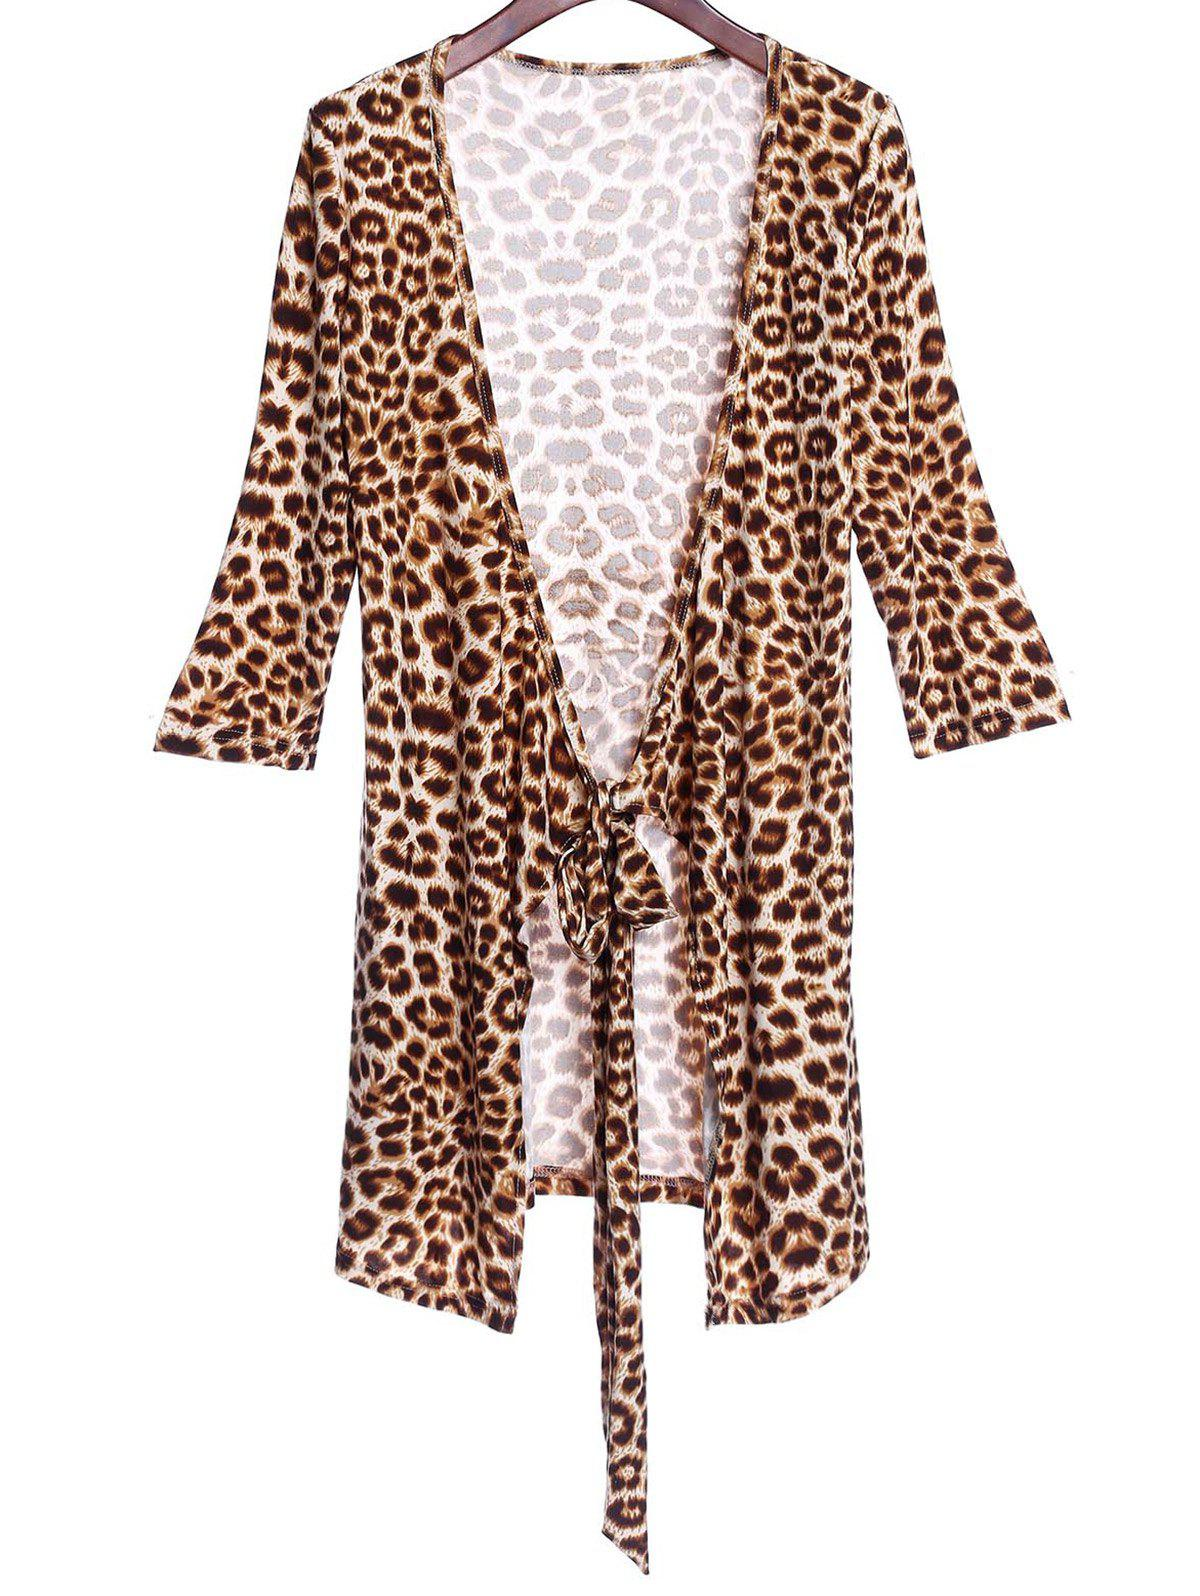 Sexy 3/4 Sleeve Plunging Neck Leopard Print Women's Club Dress